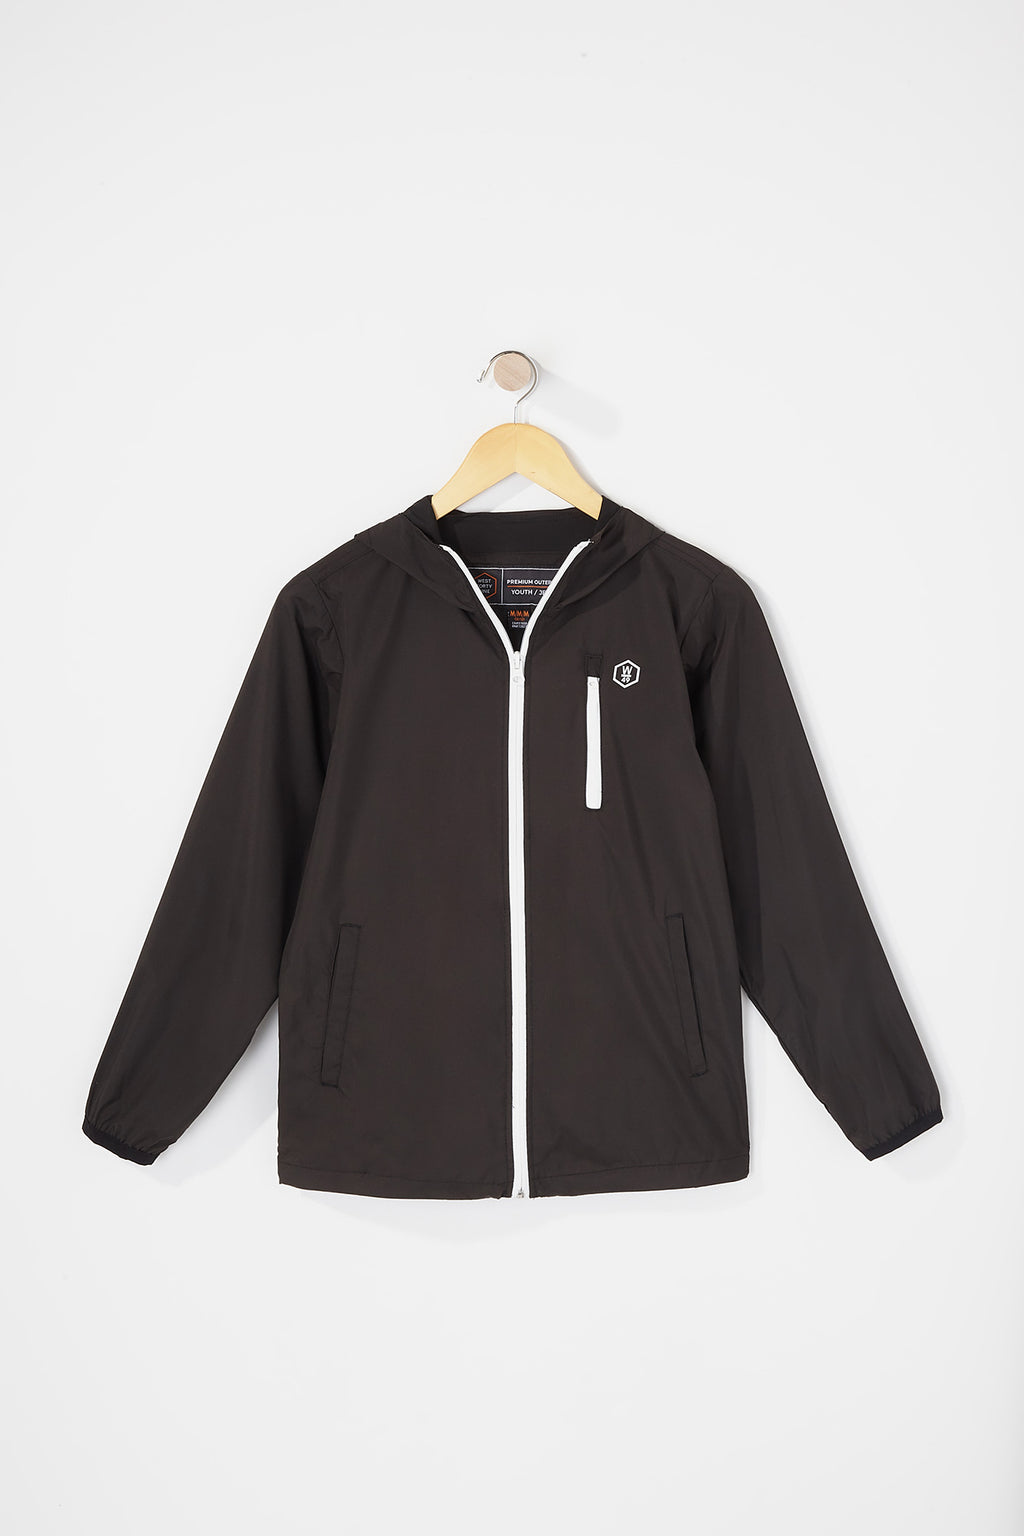 West49 Boys Pongee Tech Jacket